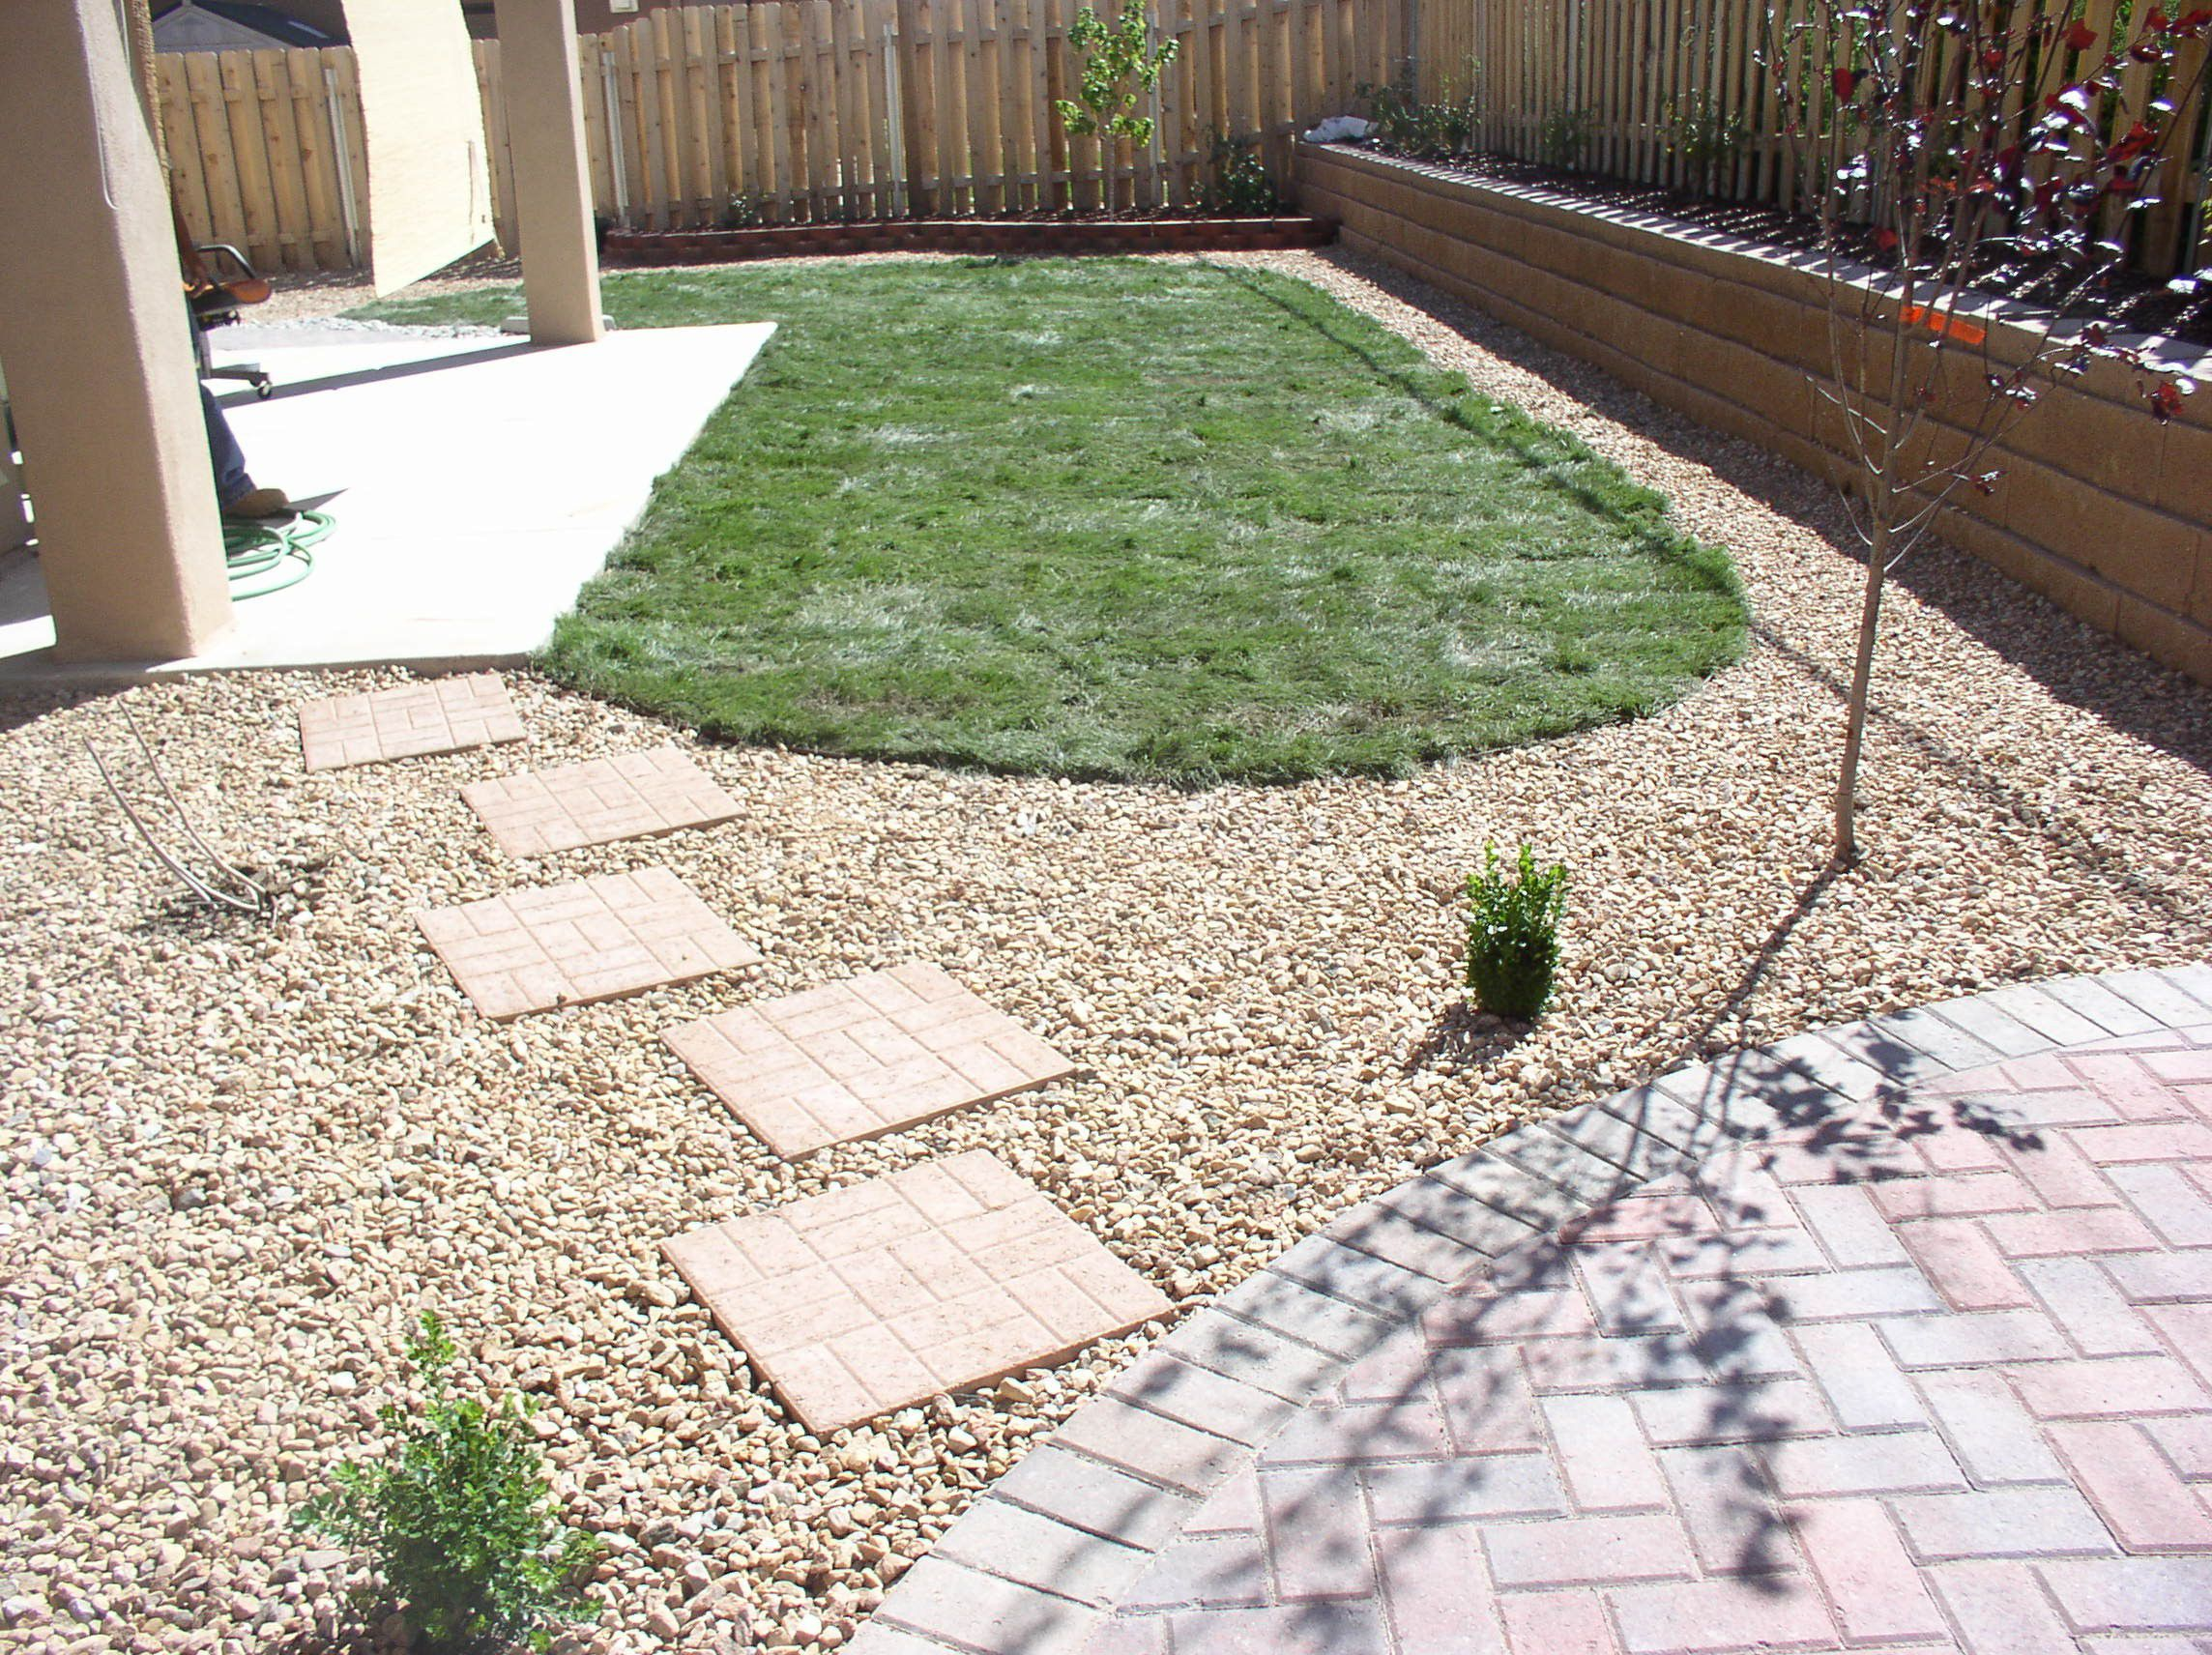 Smart Landscaping With Rocks Various Sizes In The Middle Of ...